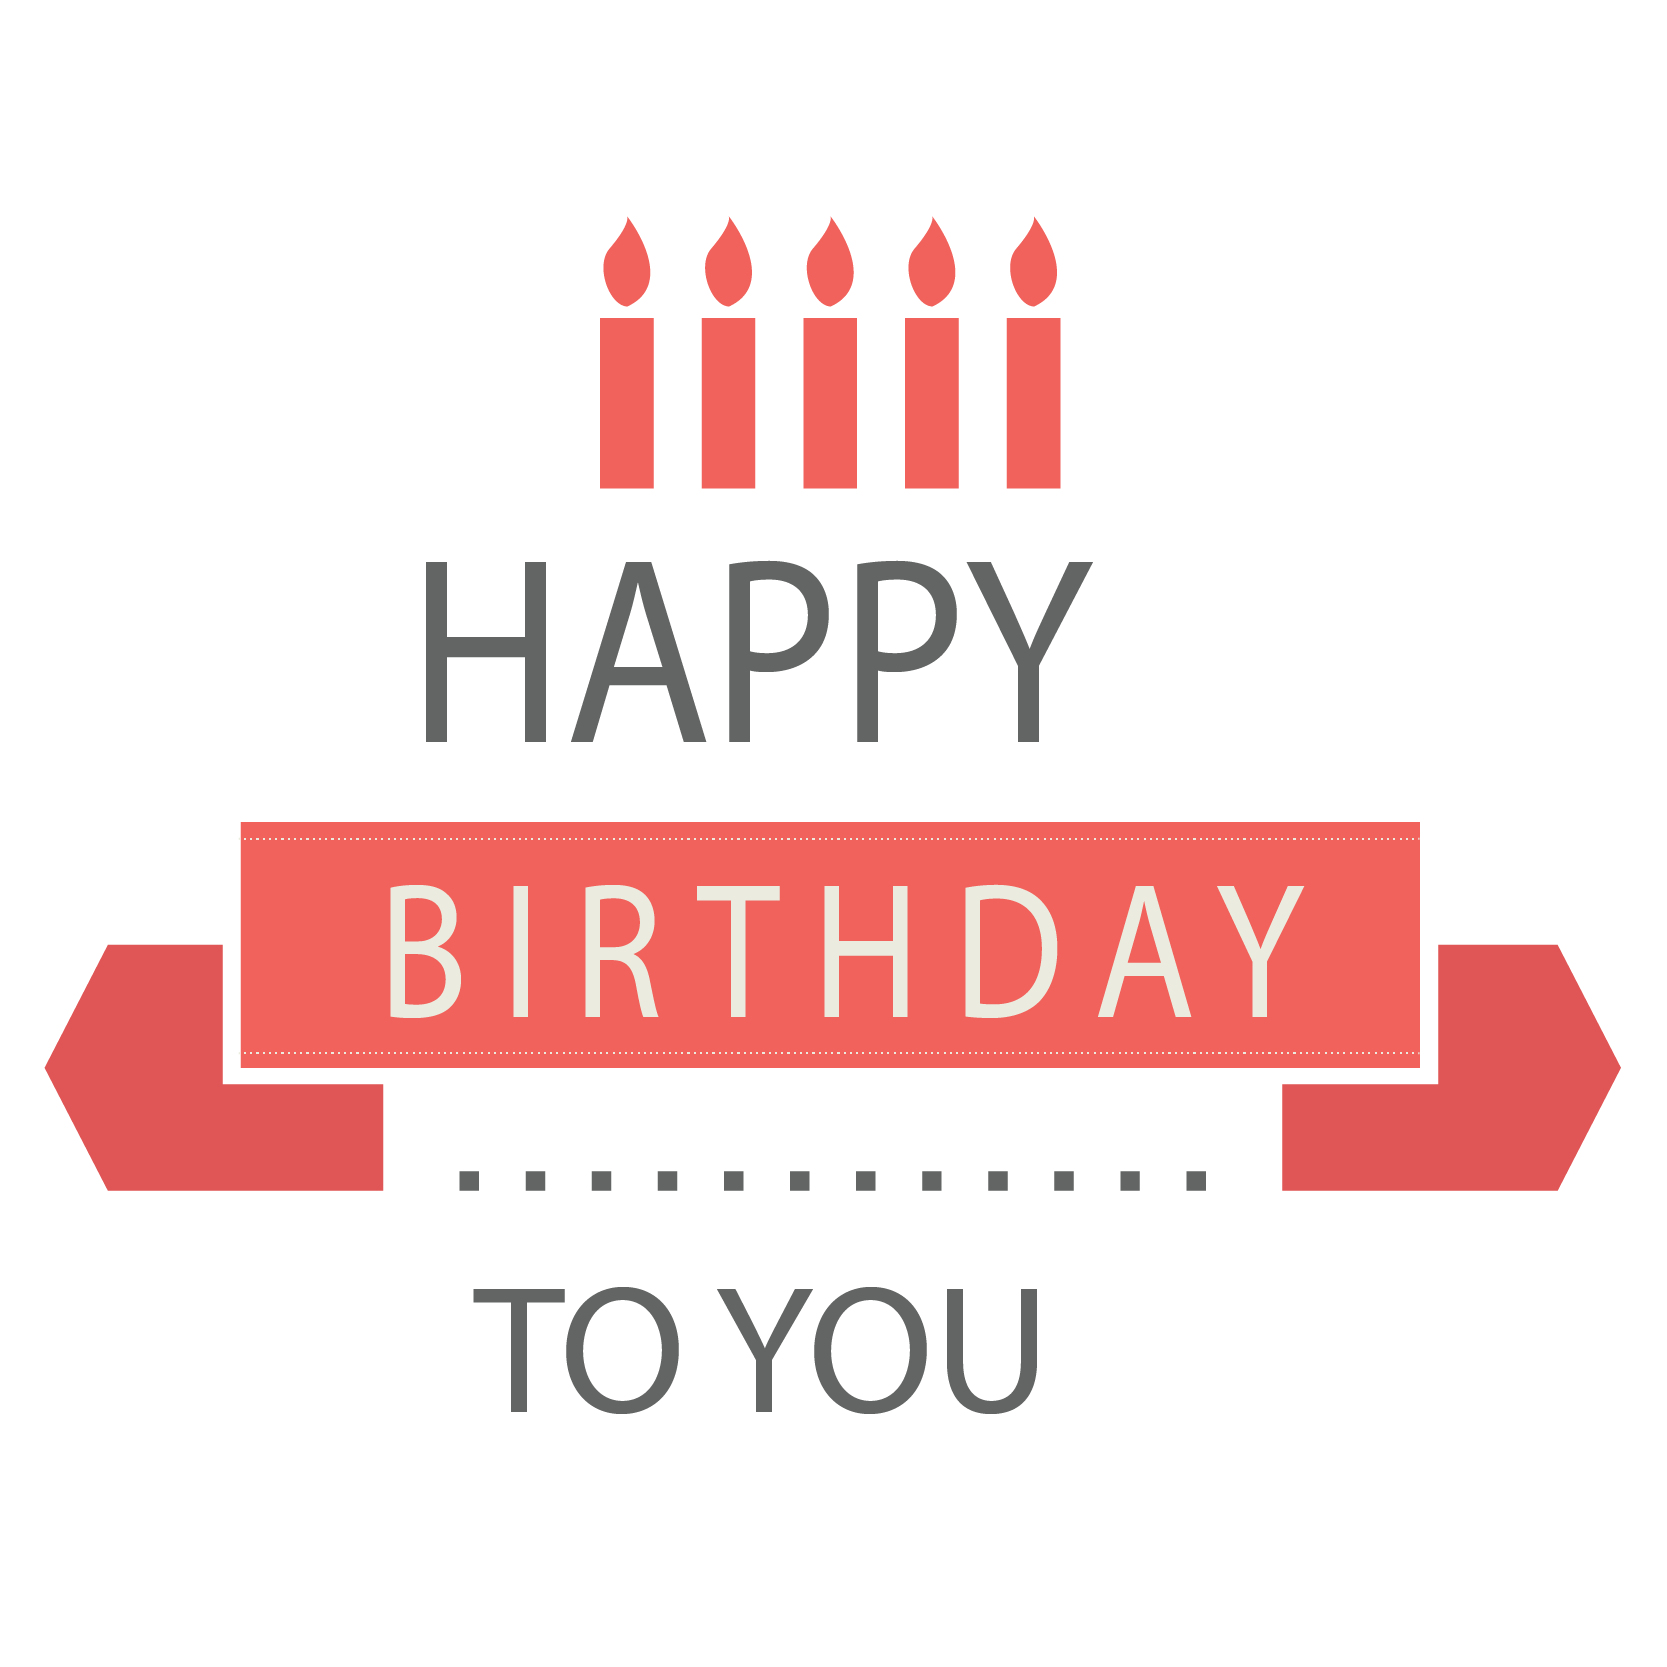 Happy birthday font png. Wish daughter happiness greeting